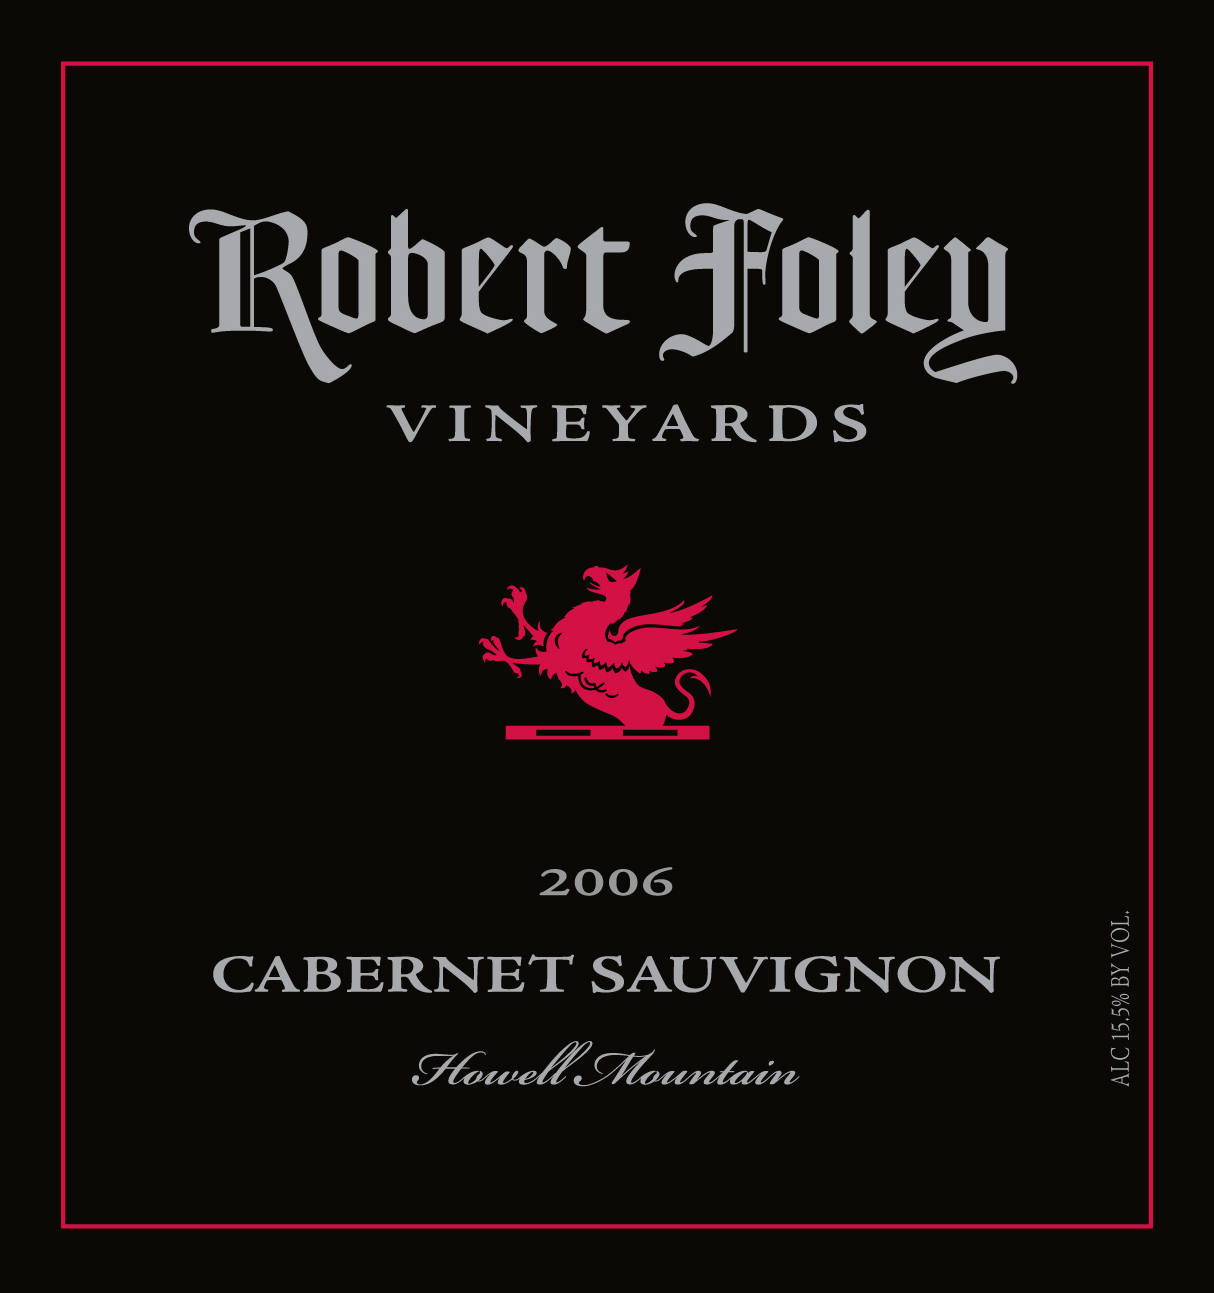 LIBRARY: Cab Sauv (Howell Mountain) 2006 - 1.5L